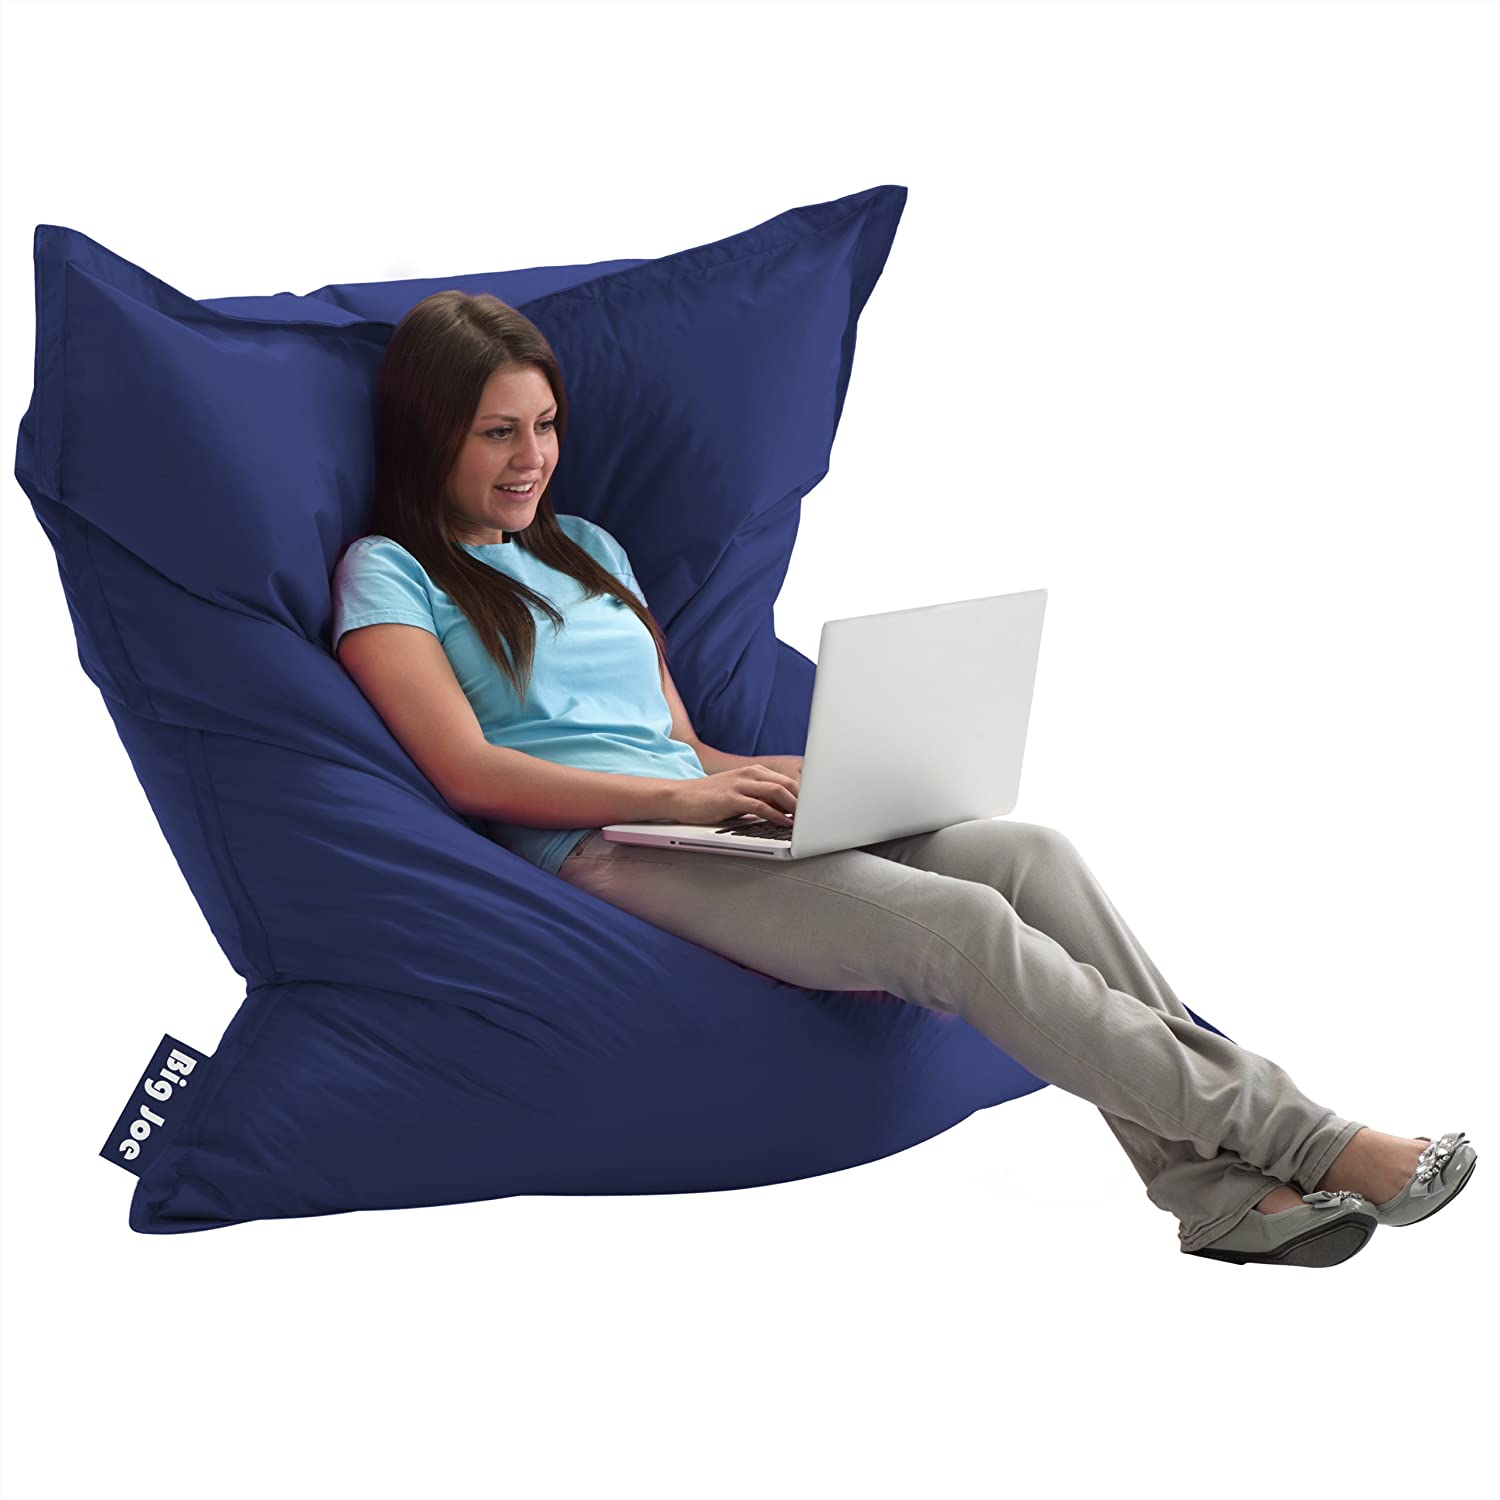 Big Joe Original Bean Bag Chair - Best Bean Bag Chairs (Top 5 Reviews) - A Great Pick